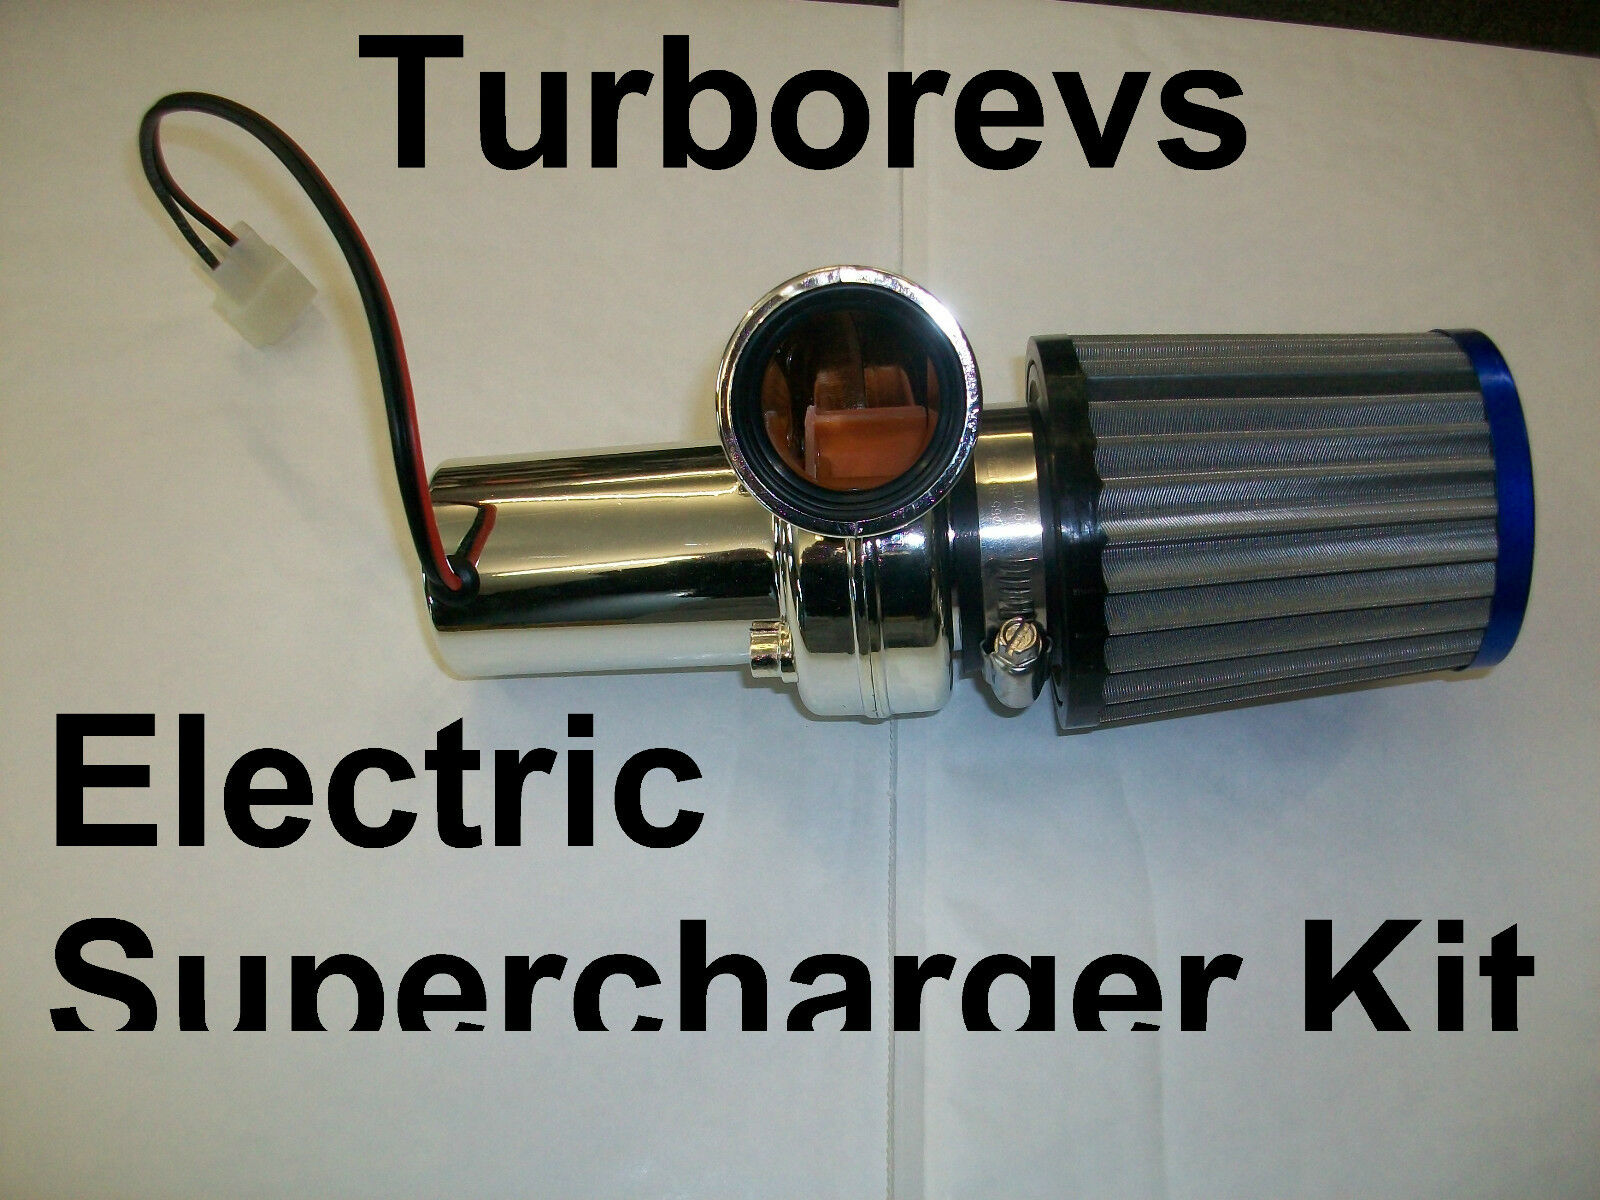 Details about ELECTRIC TURBO SUPERCHARGER KIT 49CC 50CC SCOOTER MOPED PIT  DIRT MINI MOTO BIKE